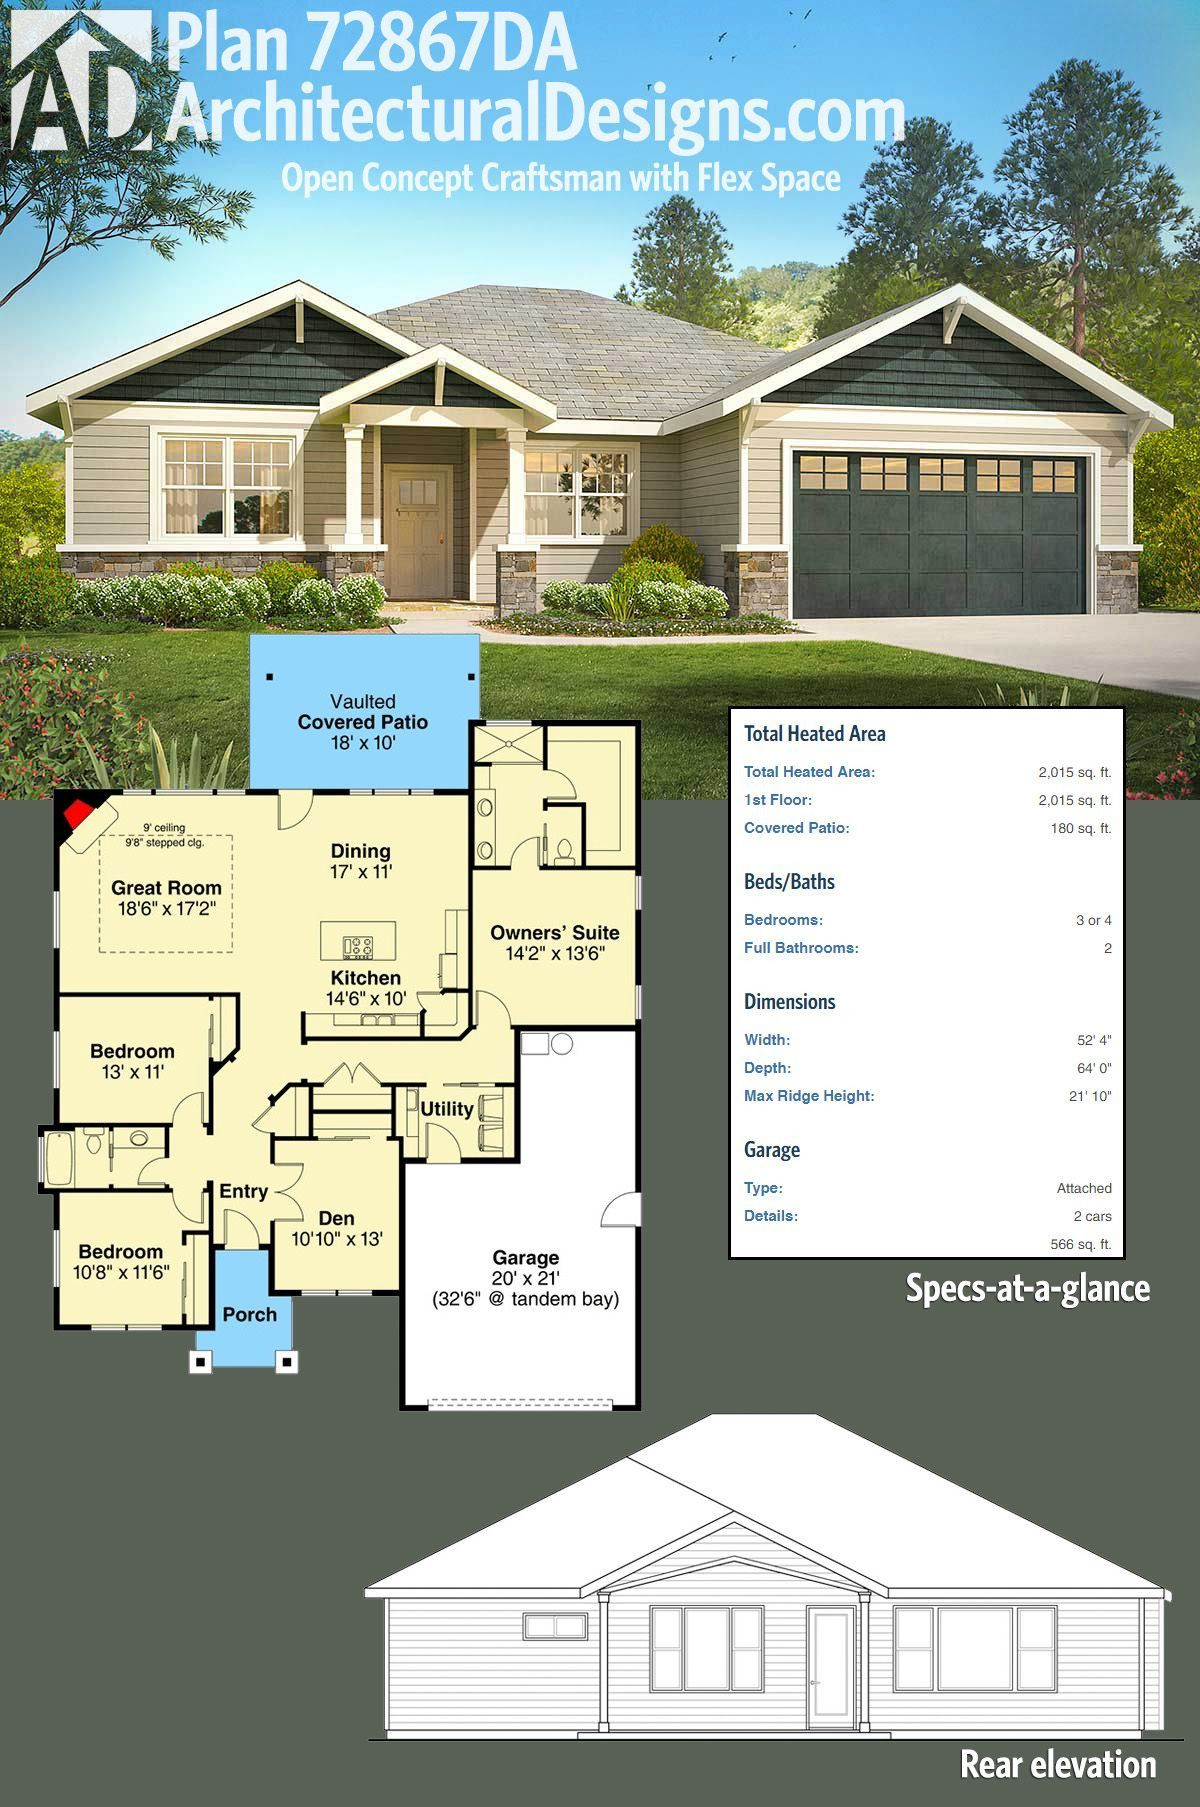 1300 Square Foot House Plans With Garage Best Of Plan Da Open Concept Craftsman With Flex S Open Concept Floor Plans Craftsman House Plans Bungalow House Plans